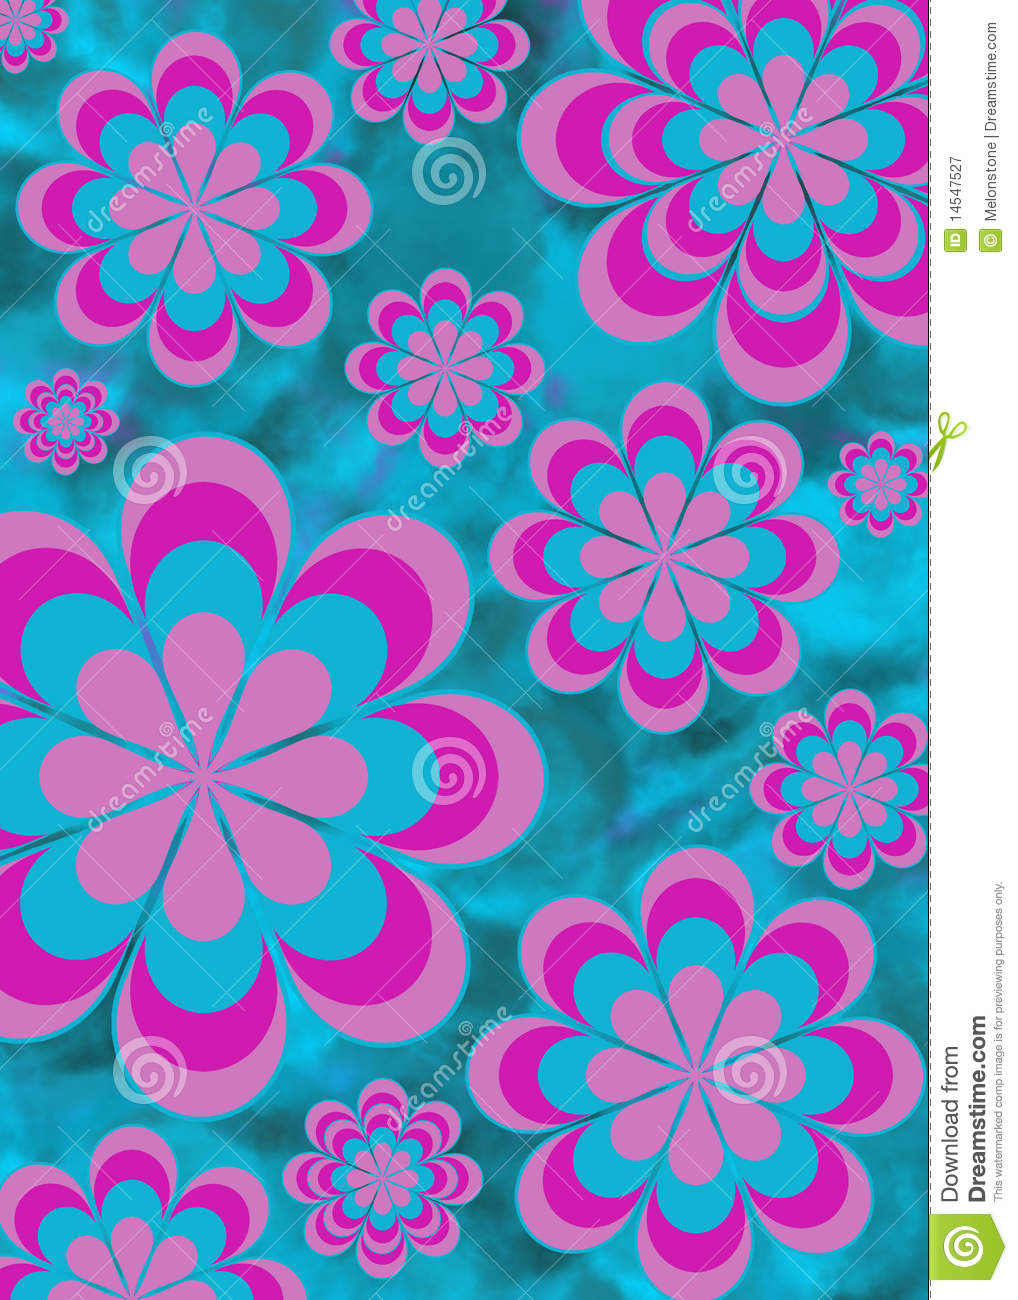 groovy background royalty free stock photography image